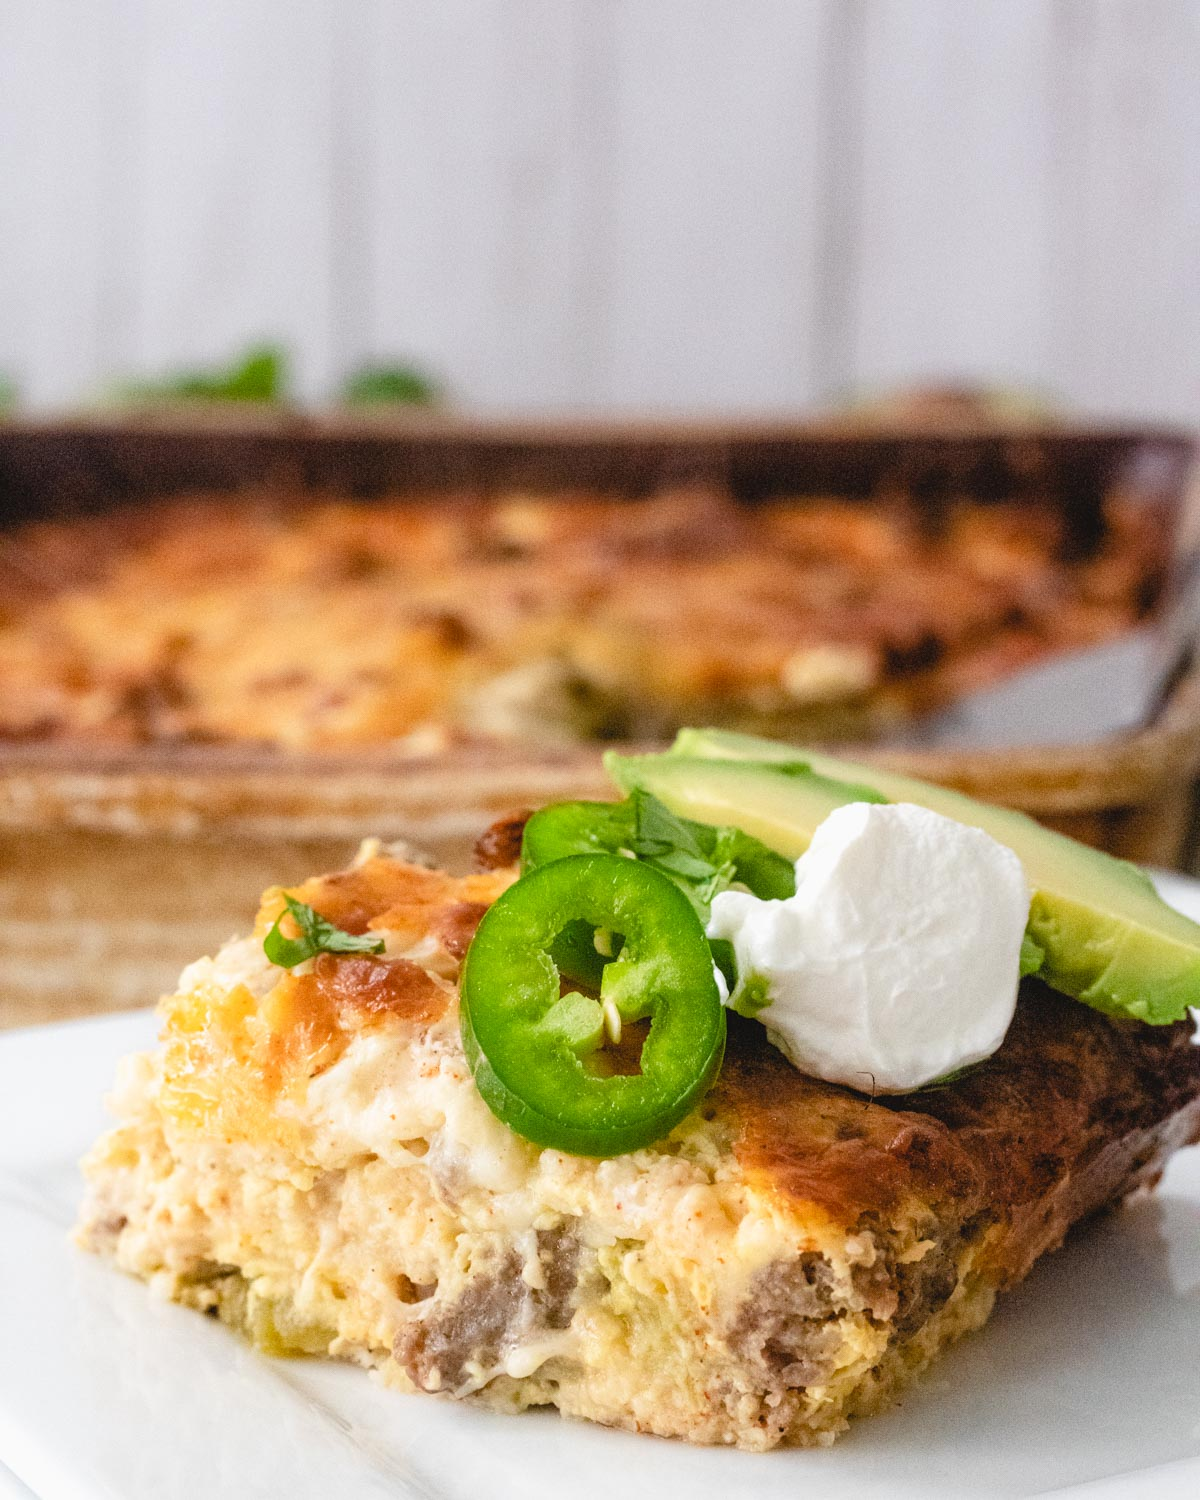 A slice of green chile breakfast casserole on a plate, topped with jalapeno, sour cream, and avocado, with the pan of casserole in the background.